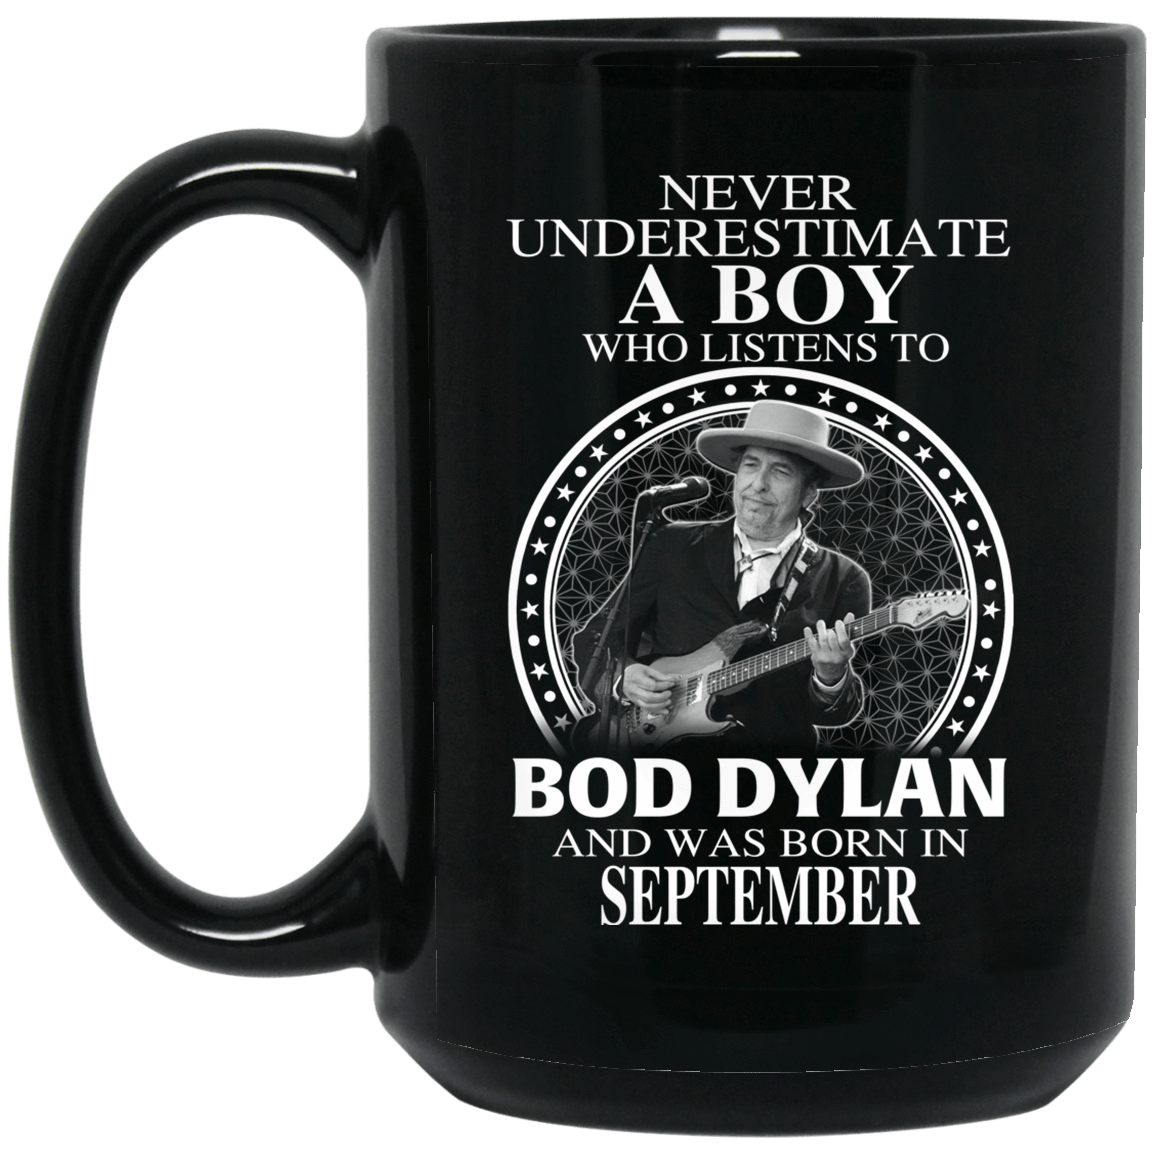 A Boy Who Listens To Bob Dylan And Was Born In September Mug 1066-10182-76154911-49311 - Tee Ript